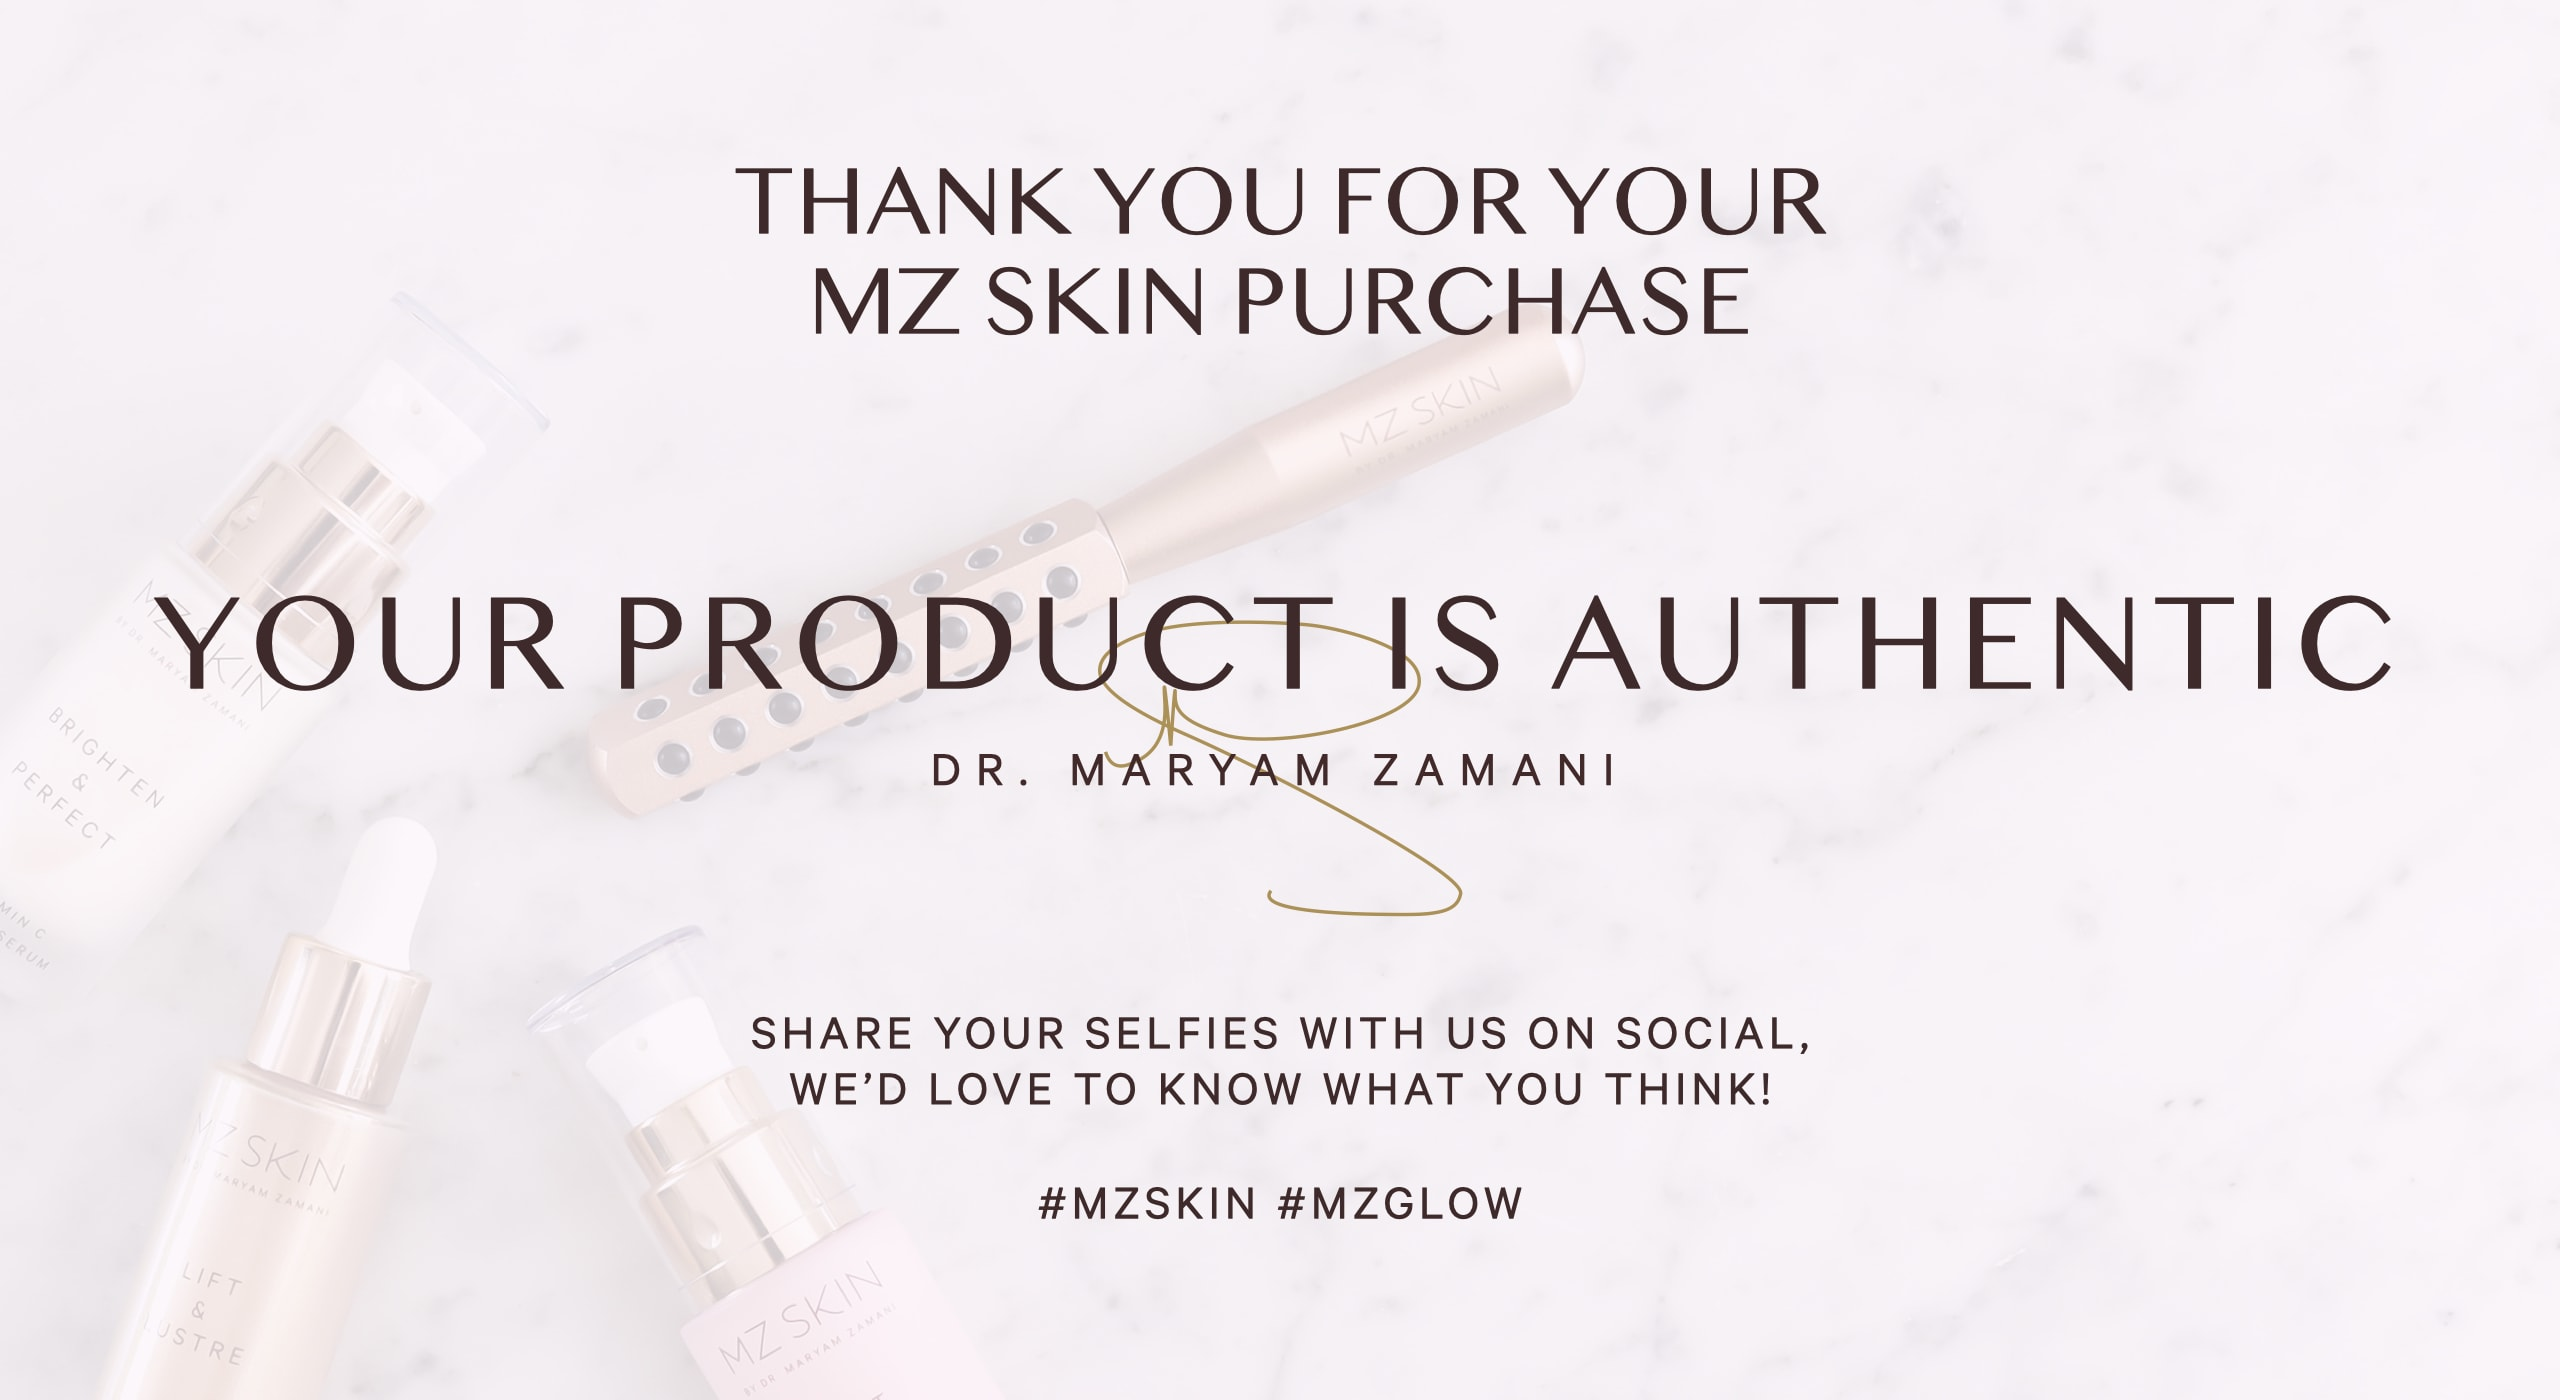 Your product is authentic